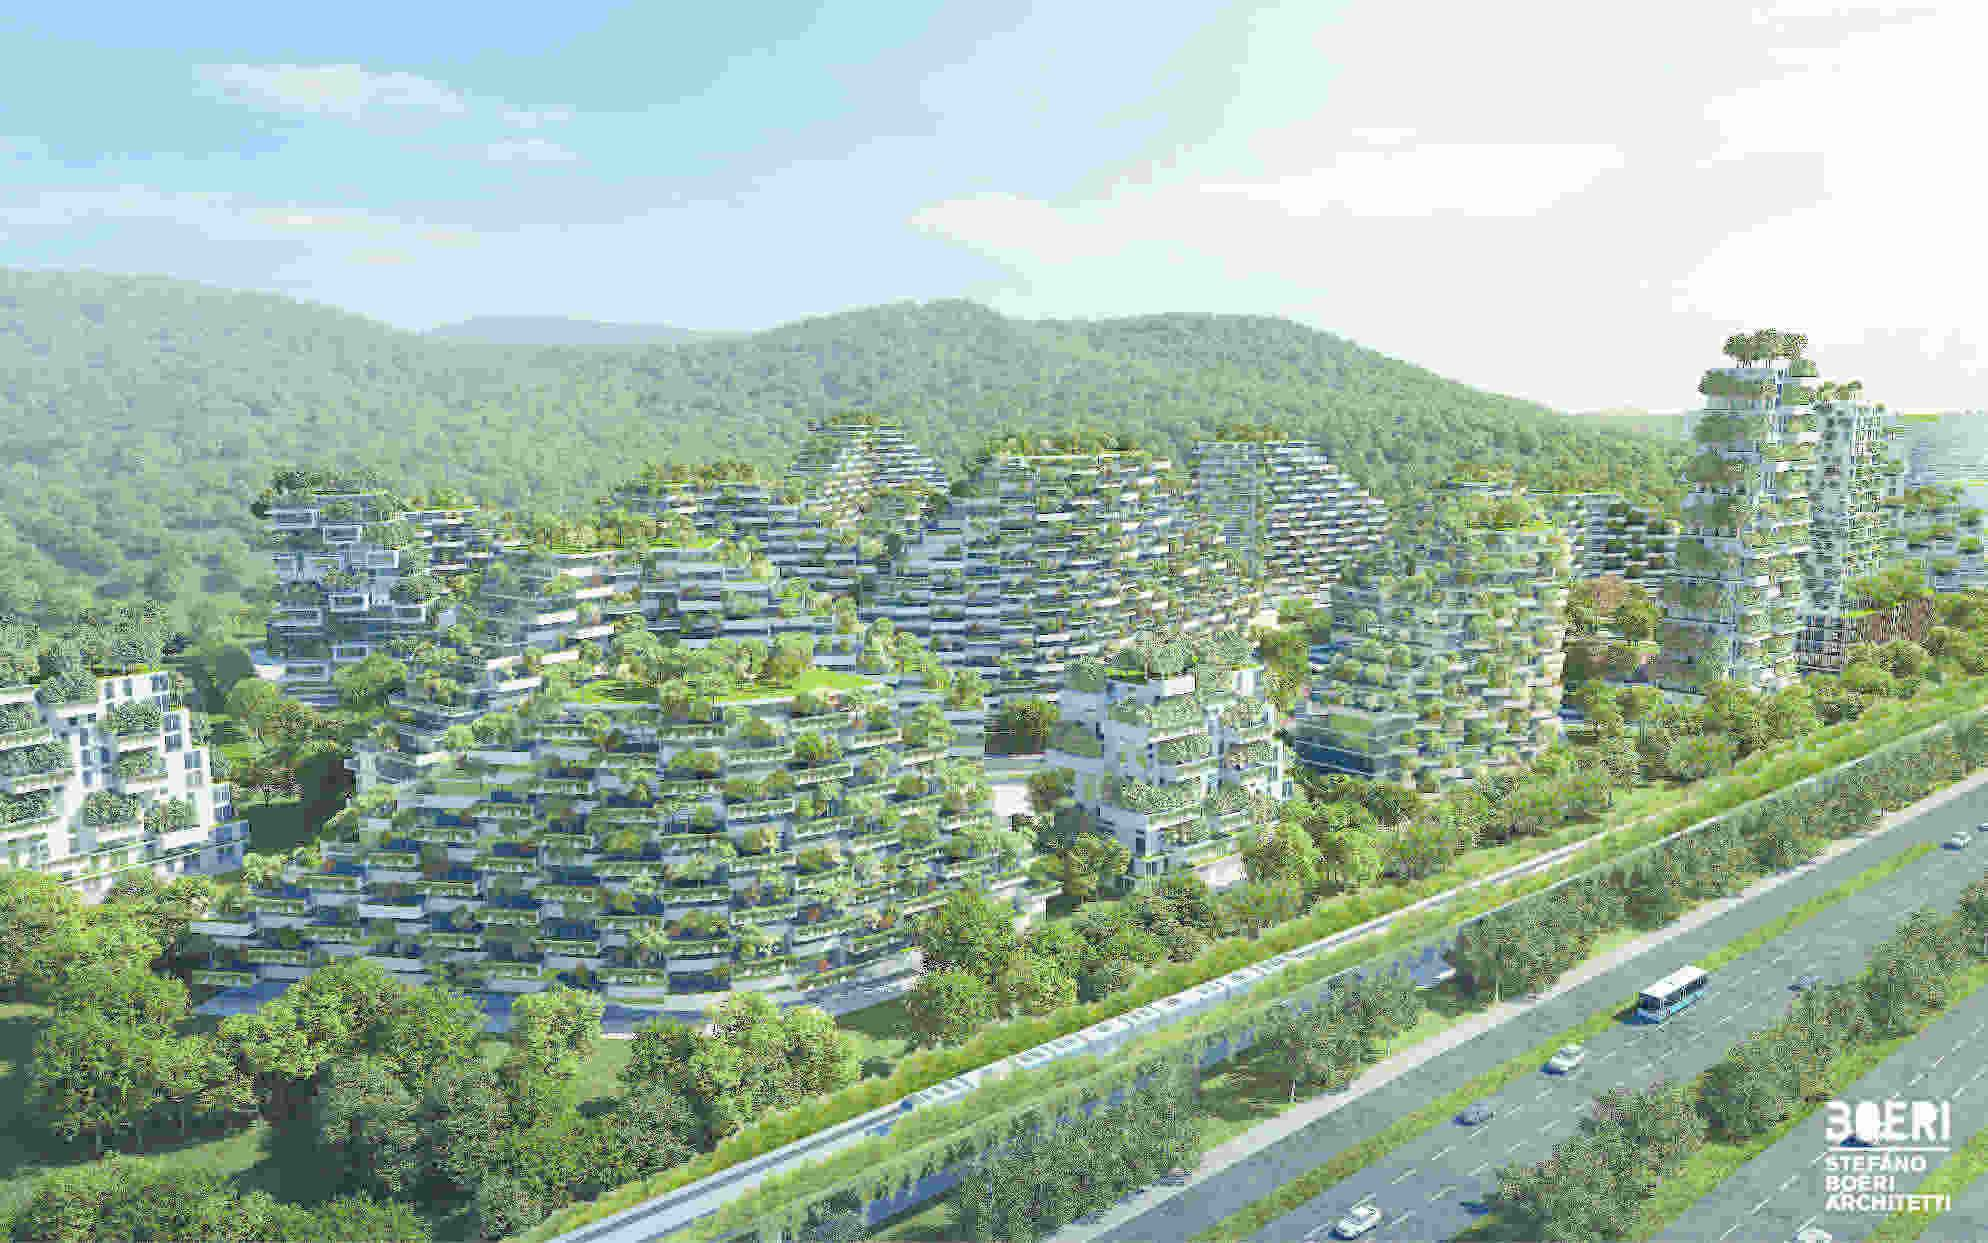 Photo 3 of 6 in A Green City in China That Will Play a